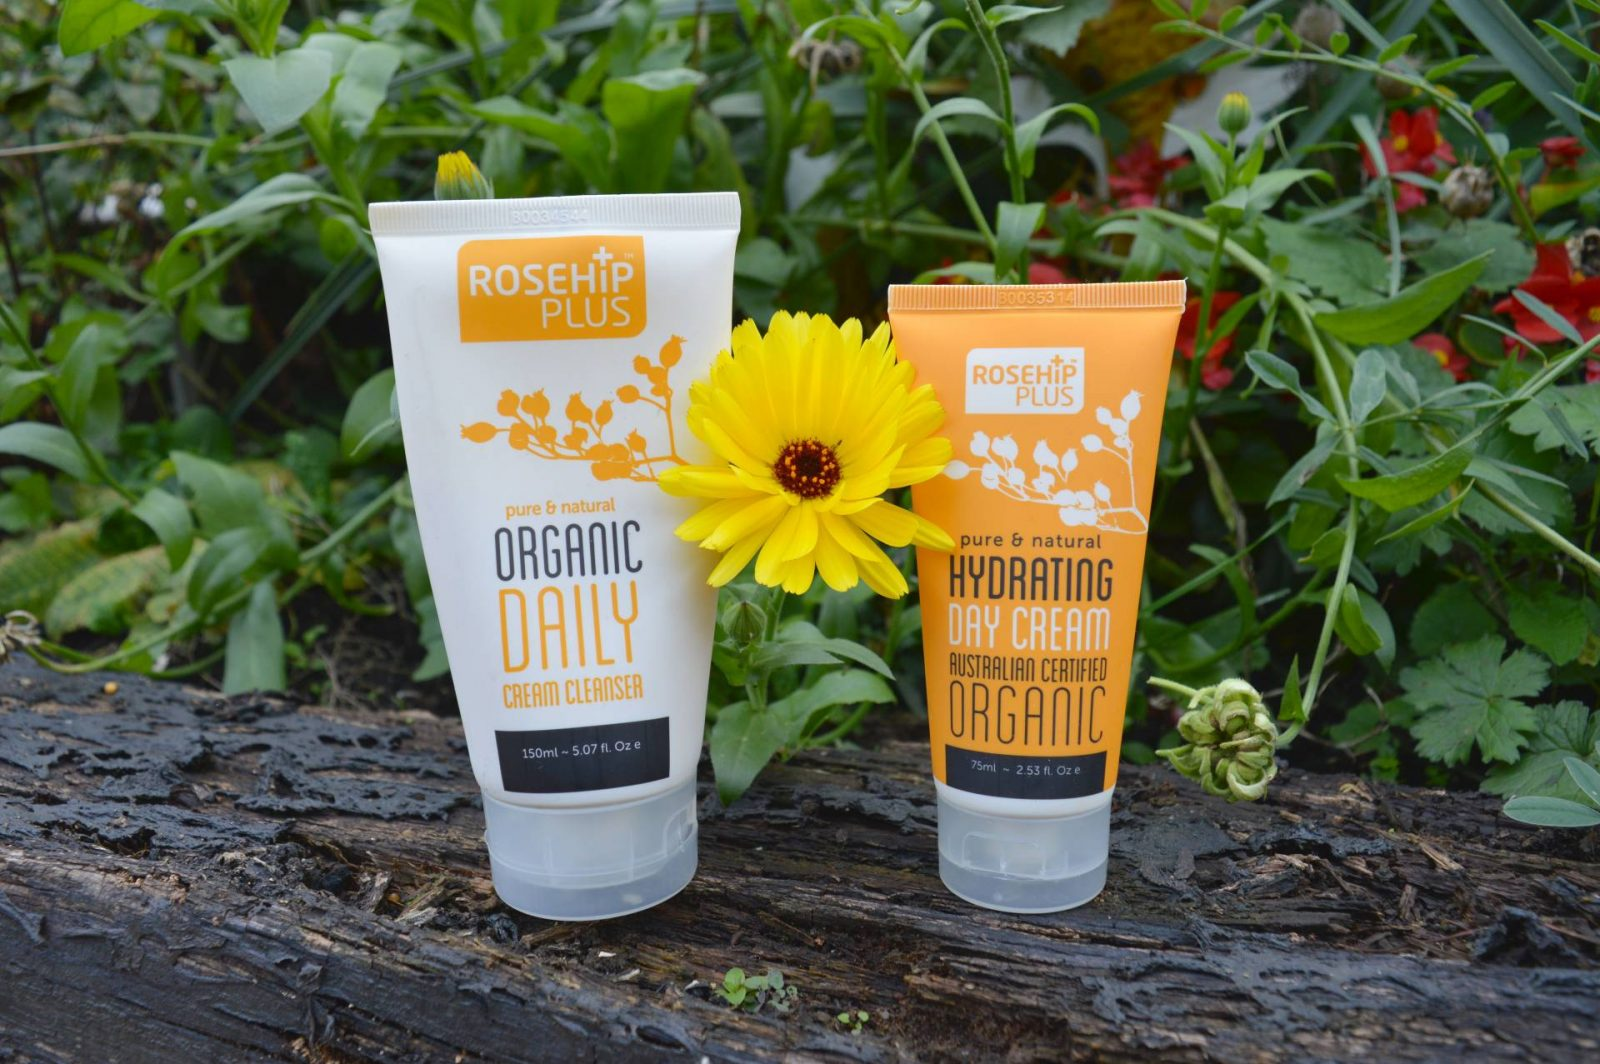 October Beauty Favourites, RosehipPLUS Organic Daily Cream Cleanser and Hydrating Day Cream